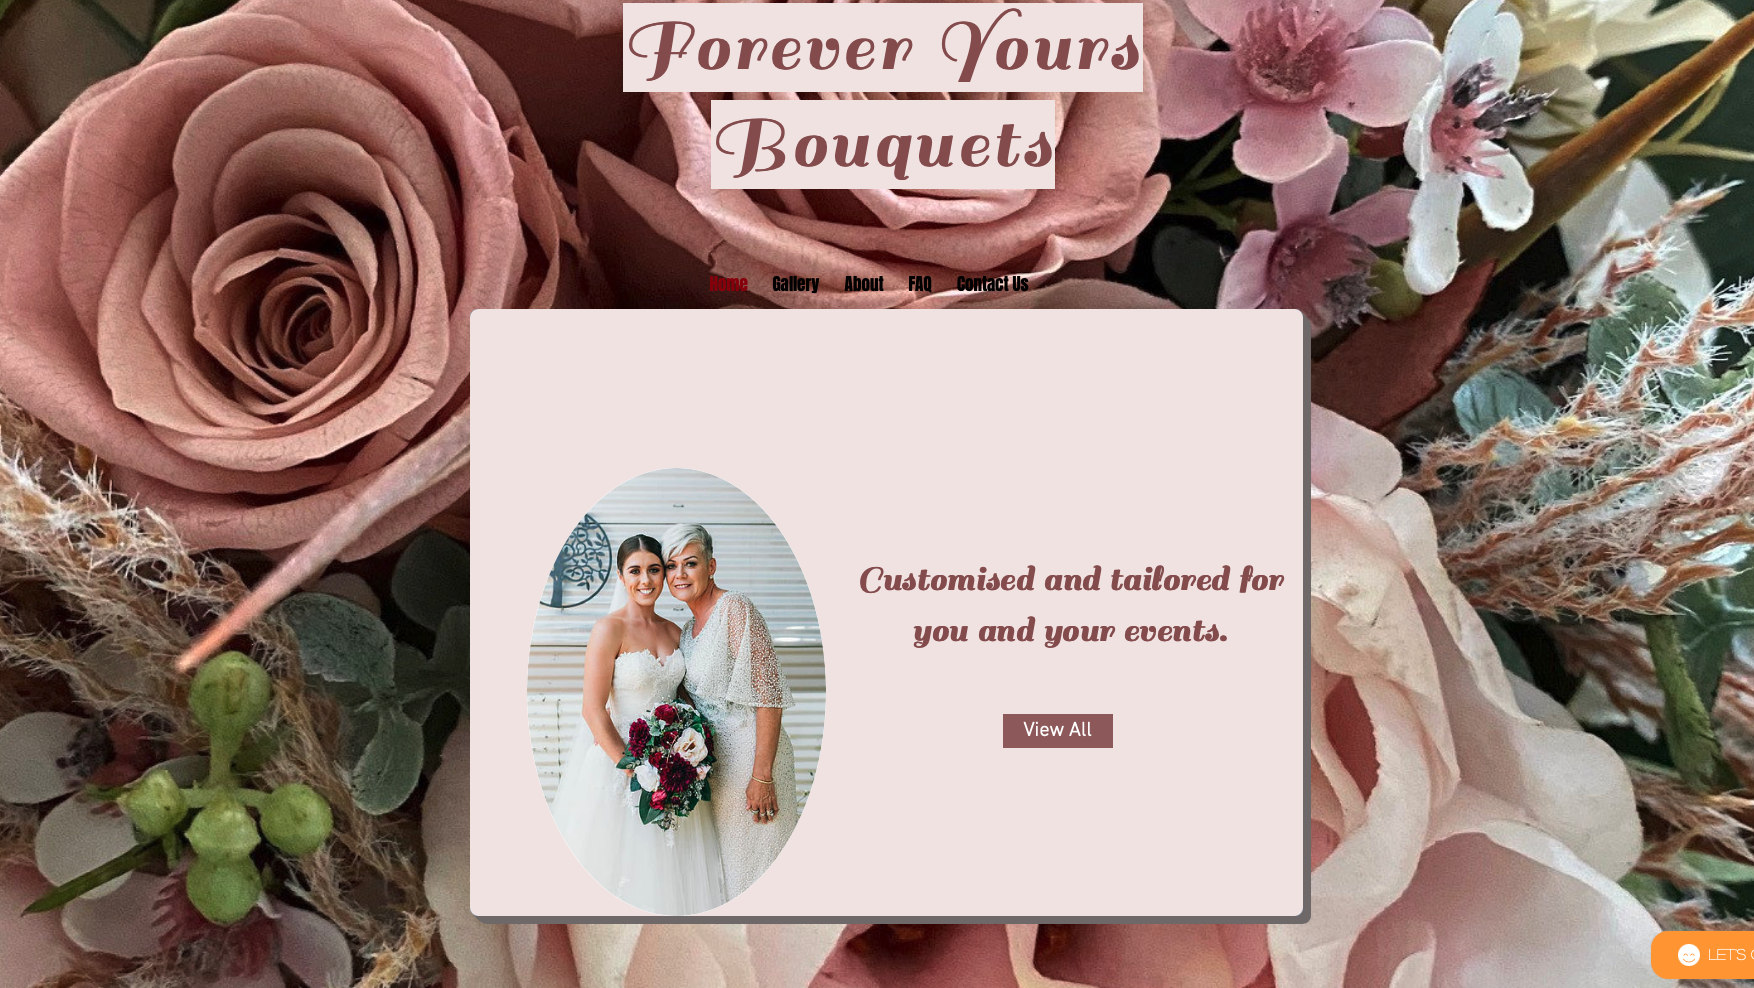 Forever Yours Bouquets